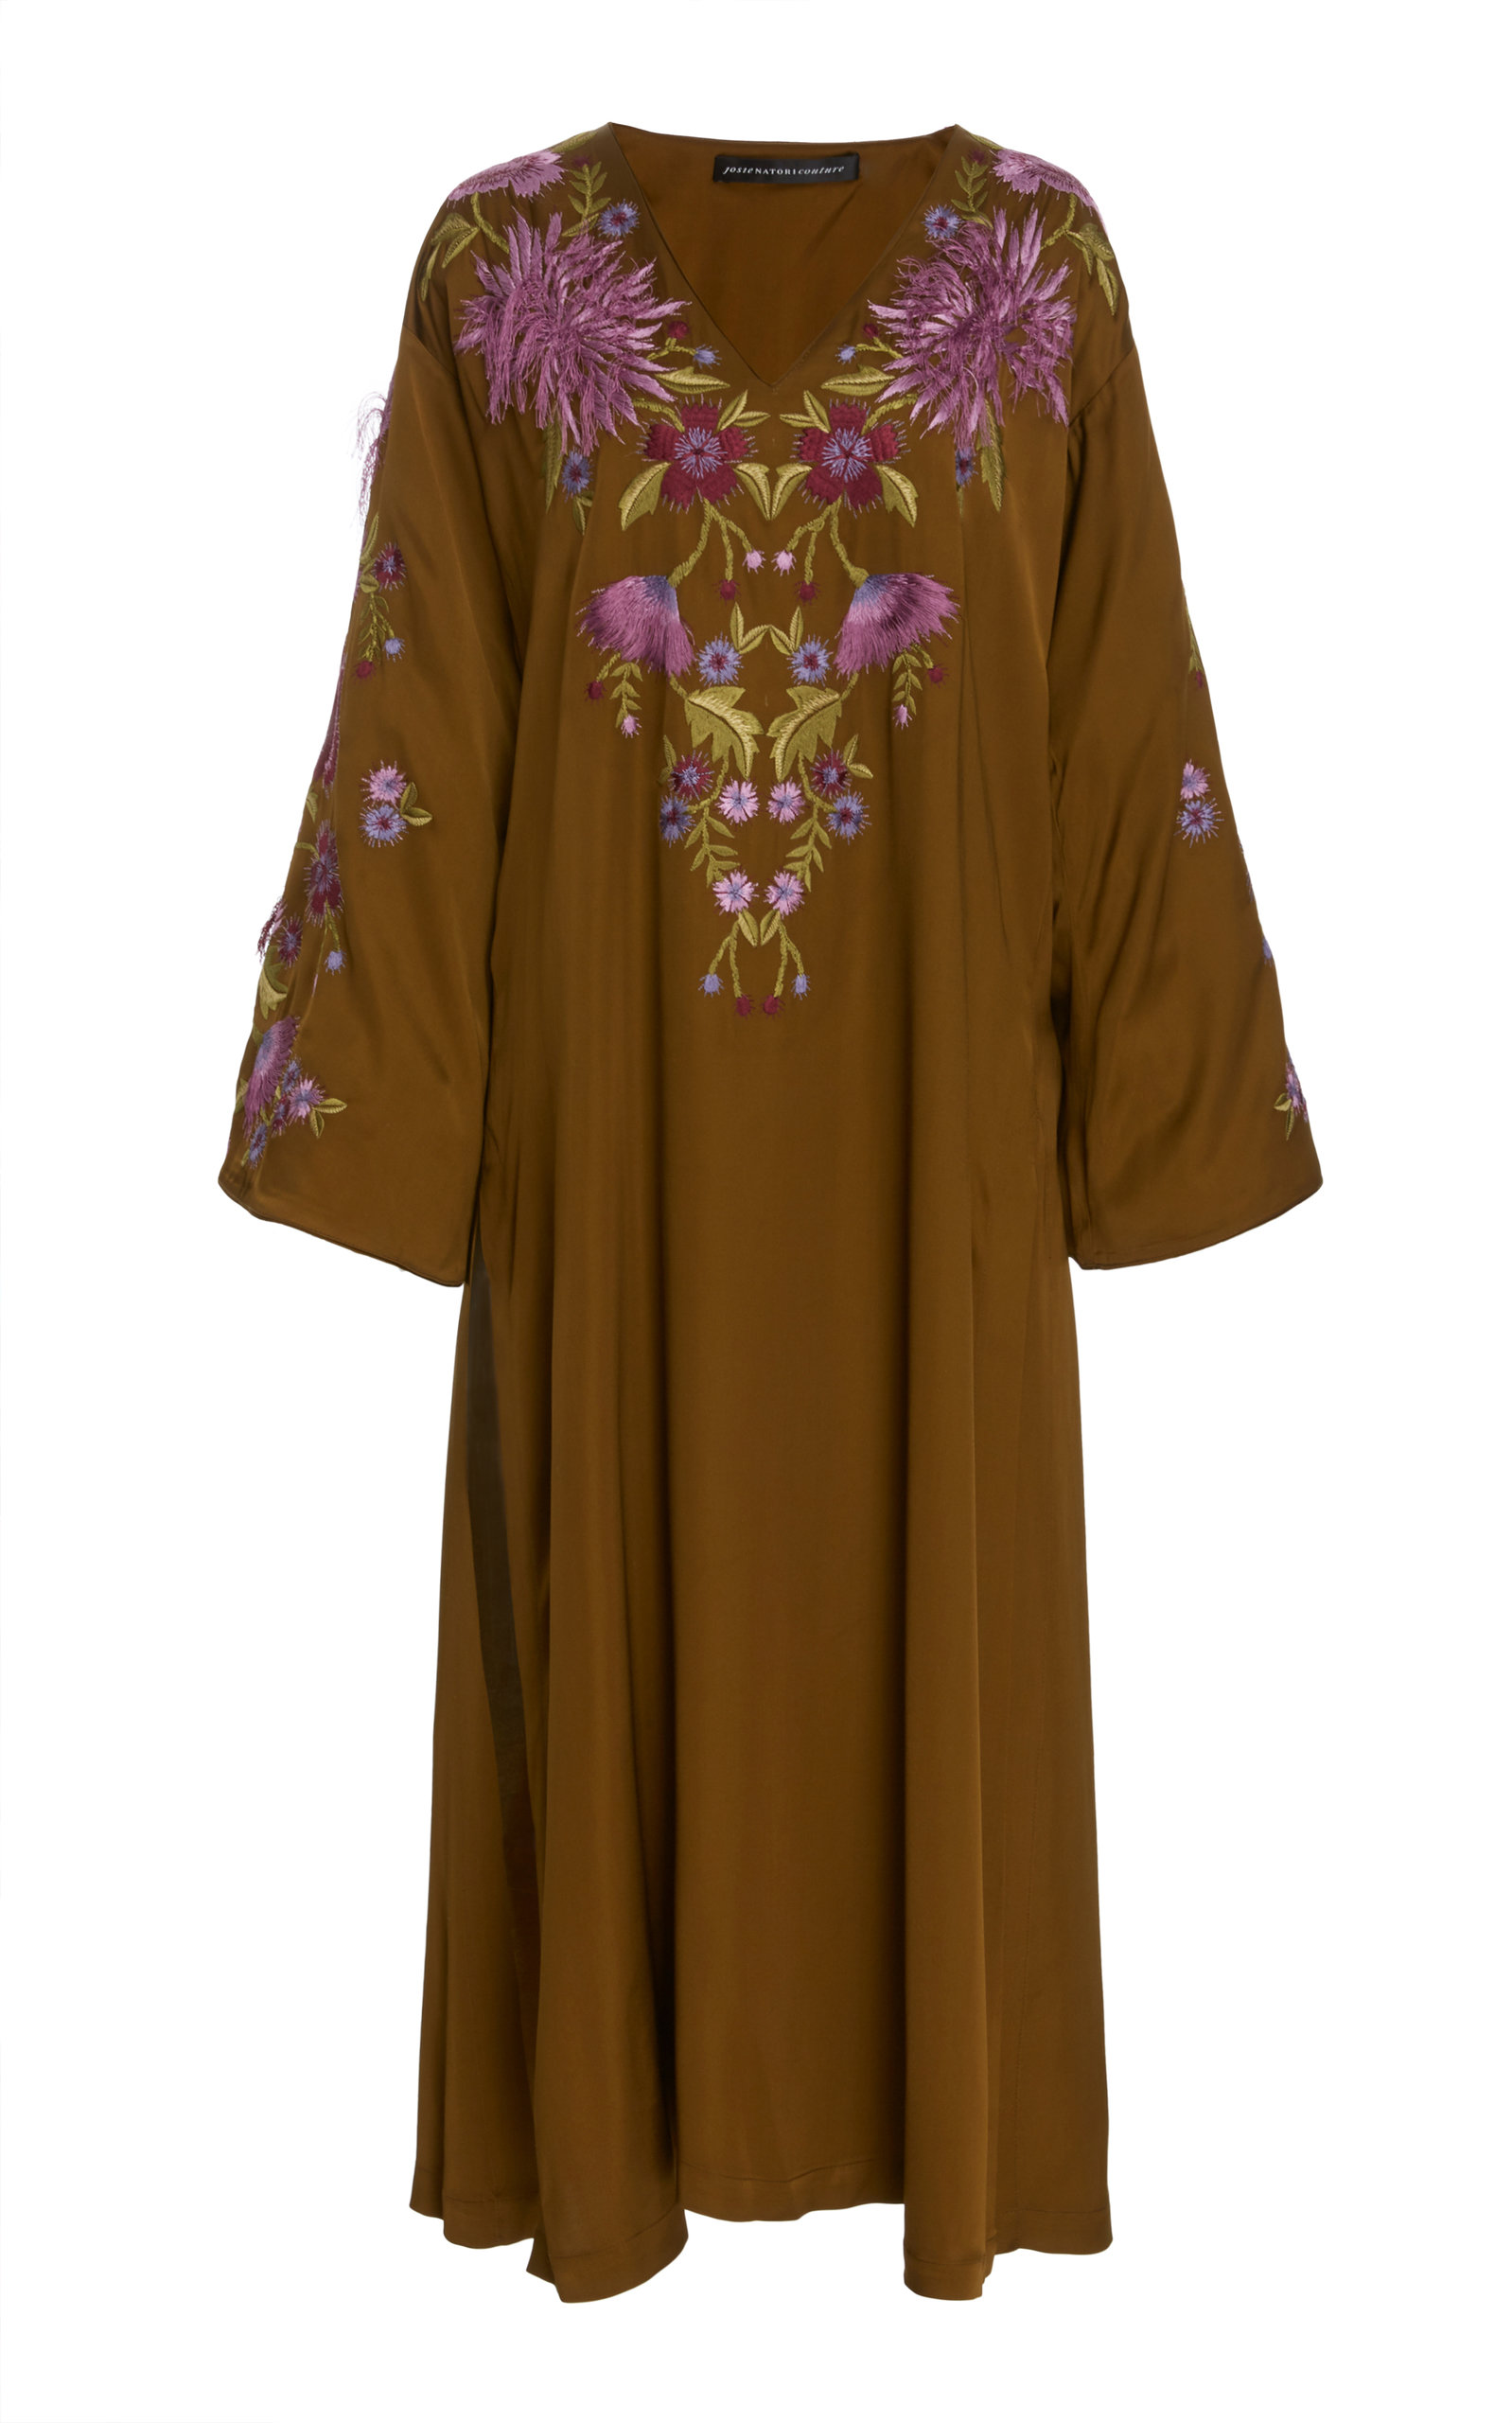 JOSIE NATORI COUTURE Long Floral Tunic in Brown